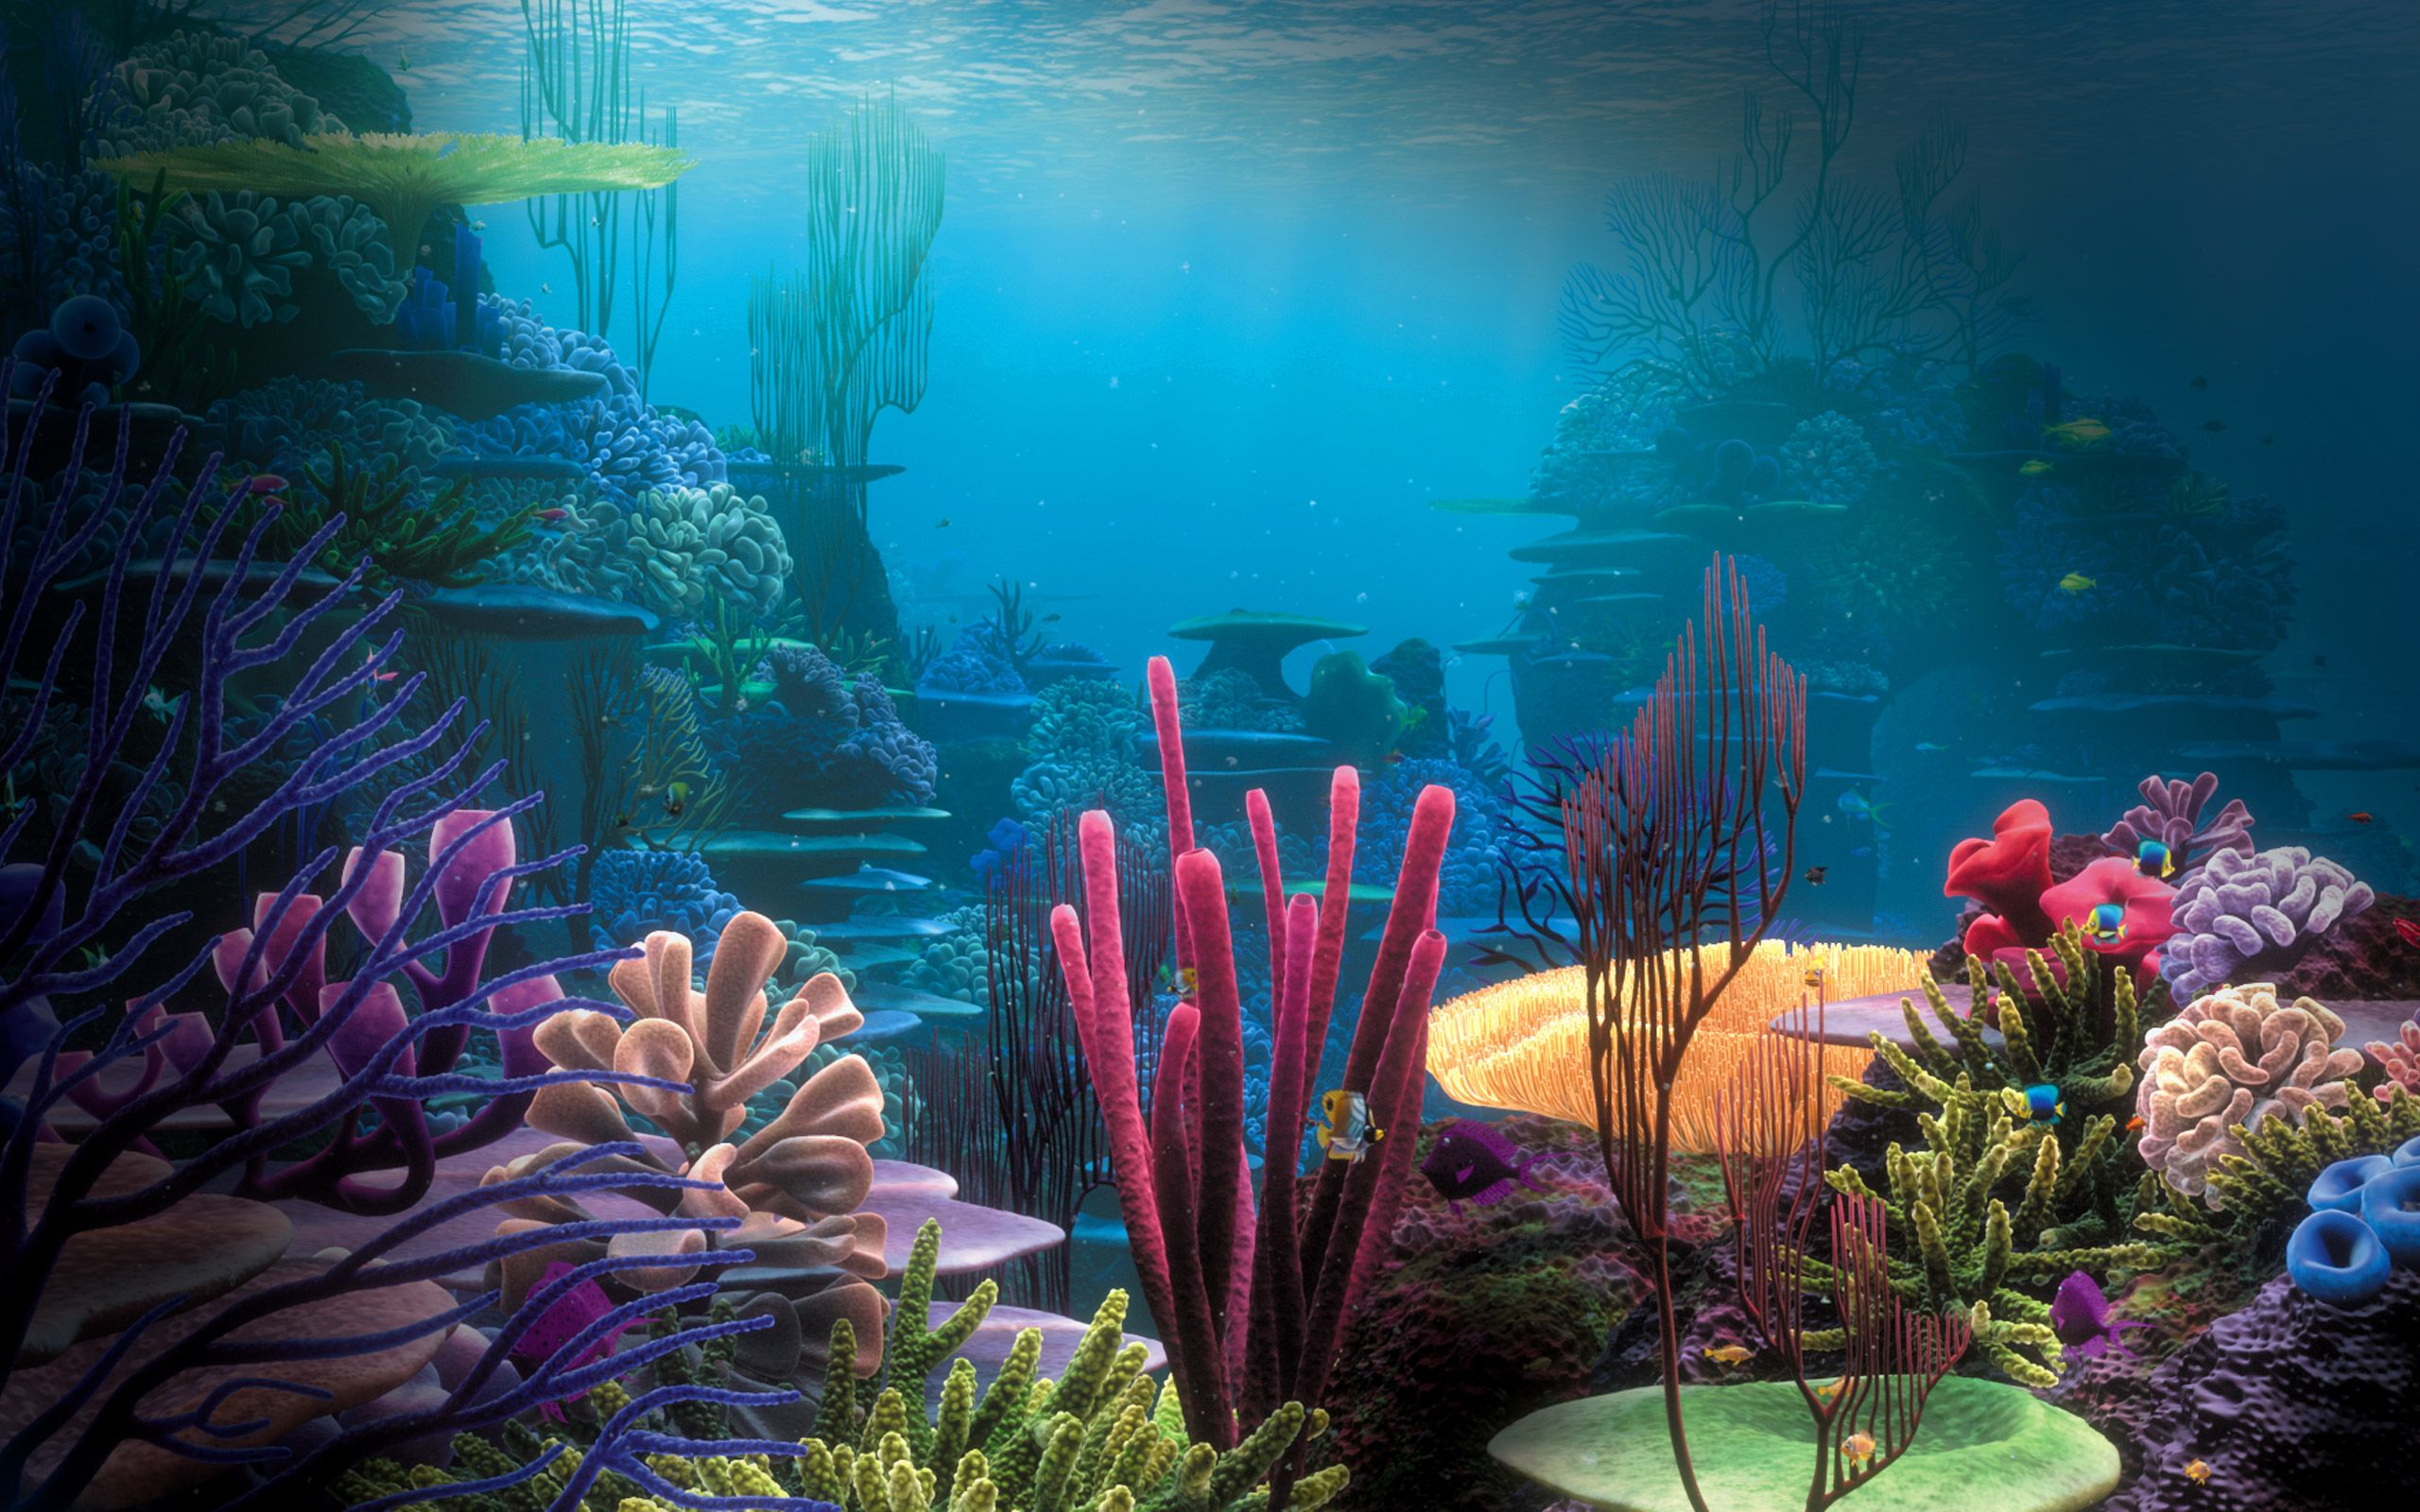 Underwater Full Hd Wallpaper Underwater Wallpaper Underwater